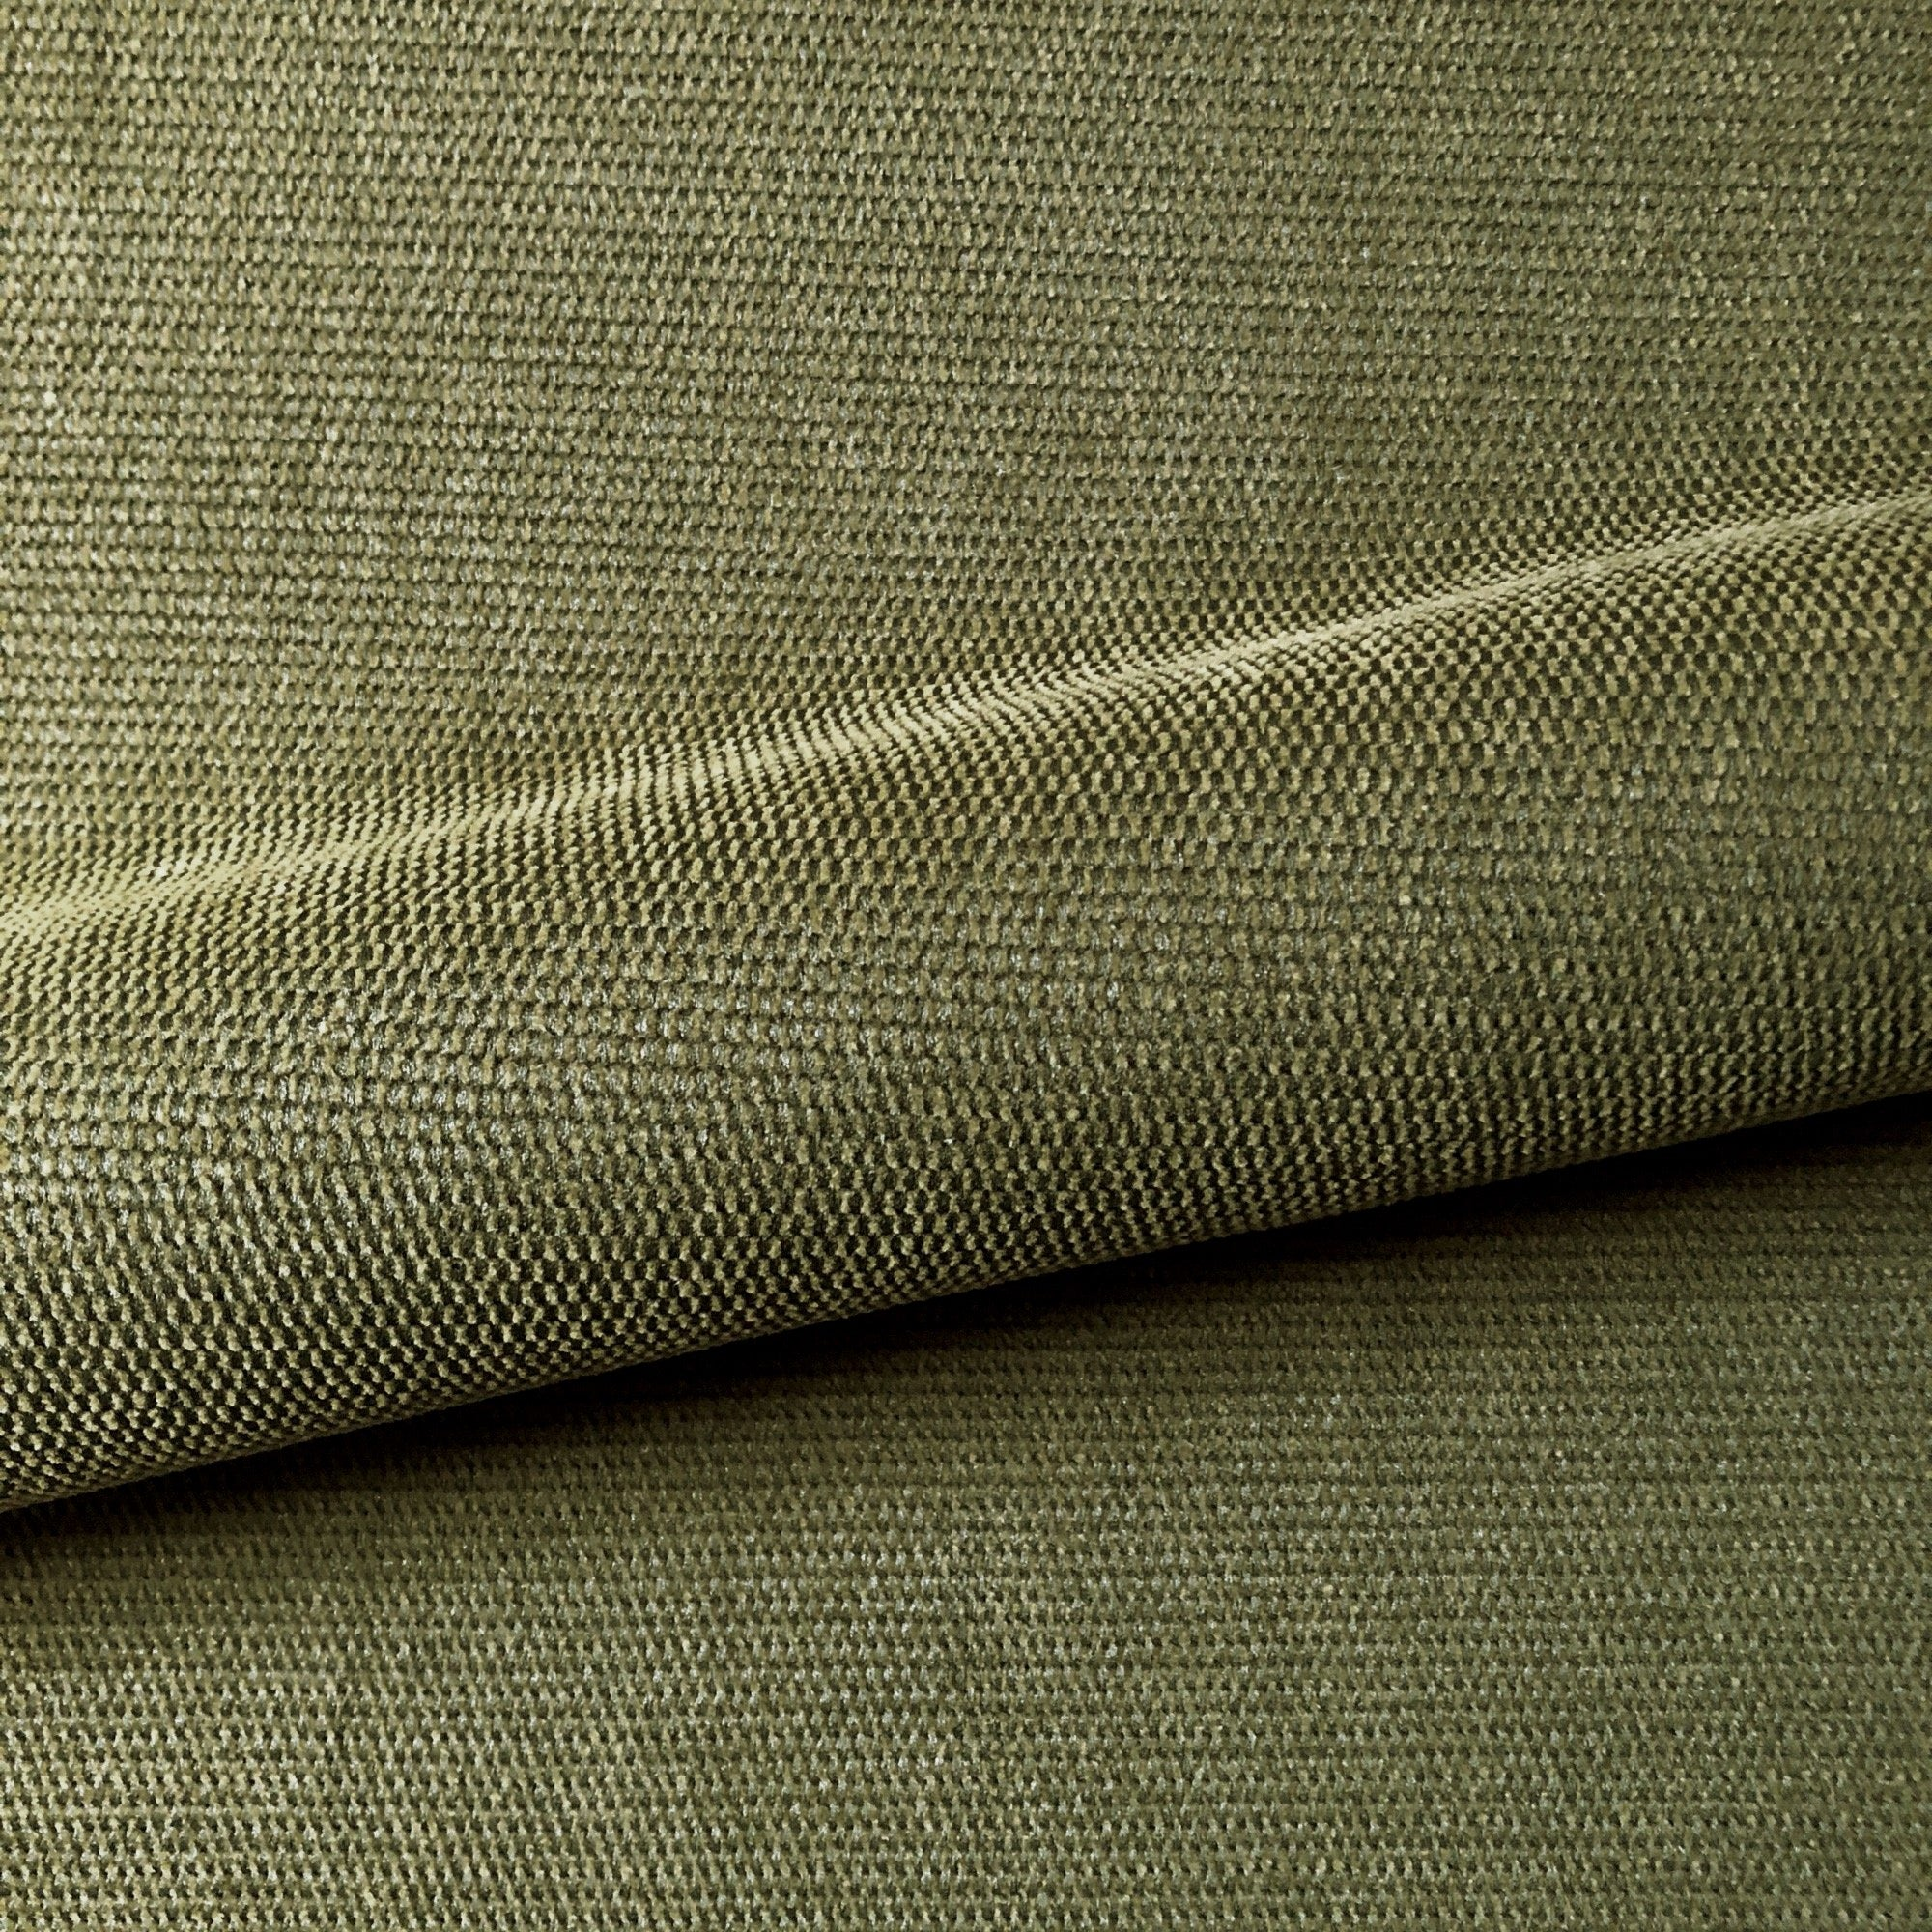 sell by the yards cotton slight pattern woven Olive Green detail  Brown and white The Chiang Mai native cotton fabric woven